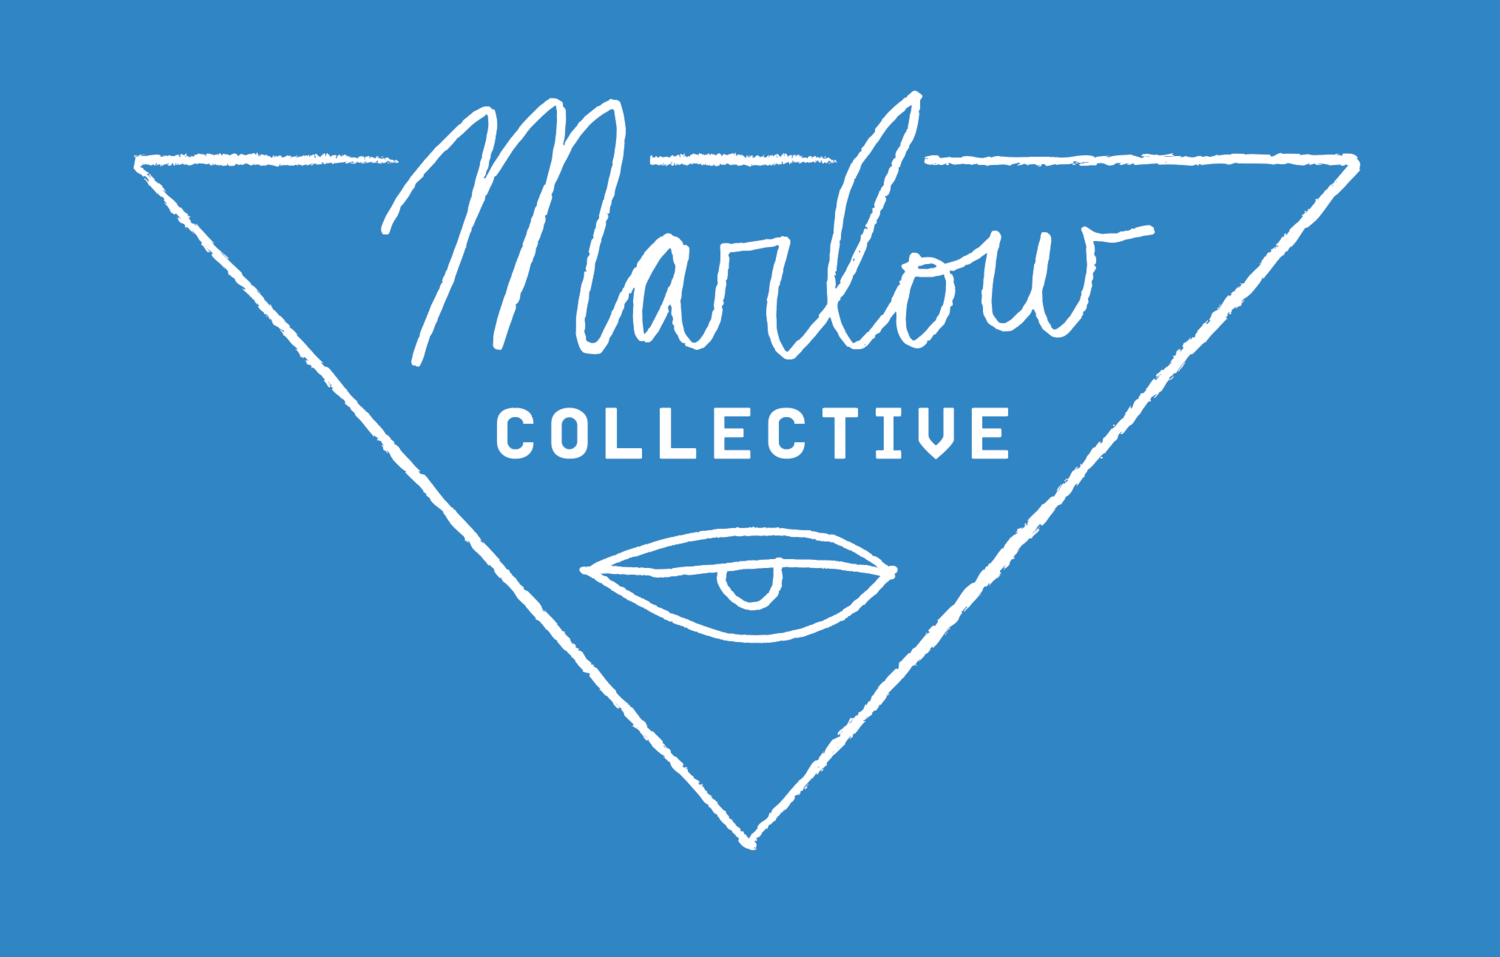 Marlow Collective